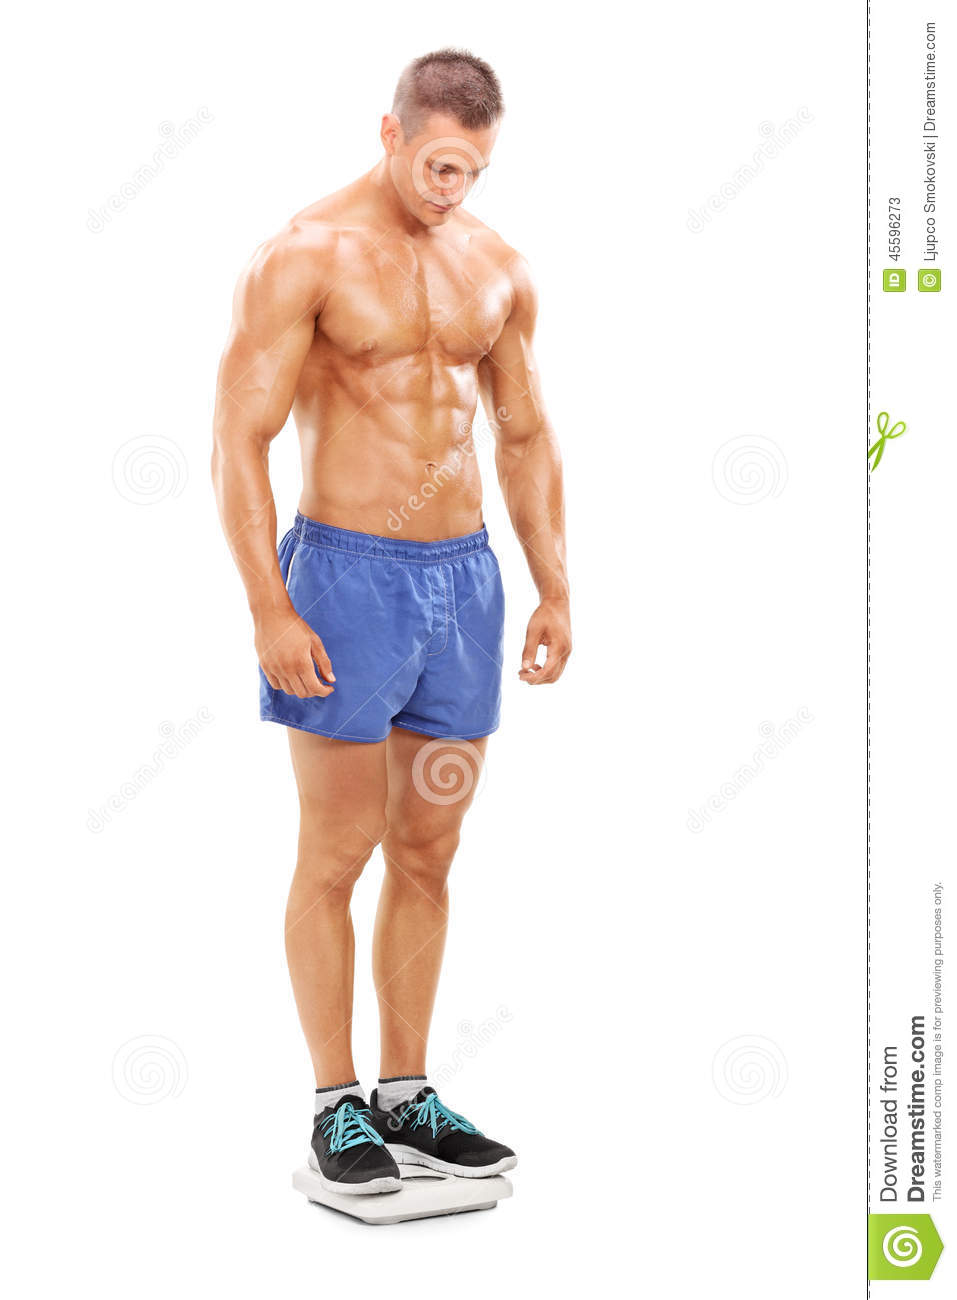 Handsome shirtless man standing on a weight scale